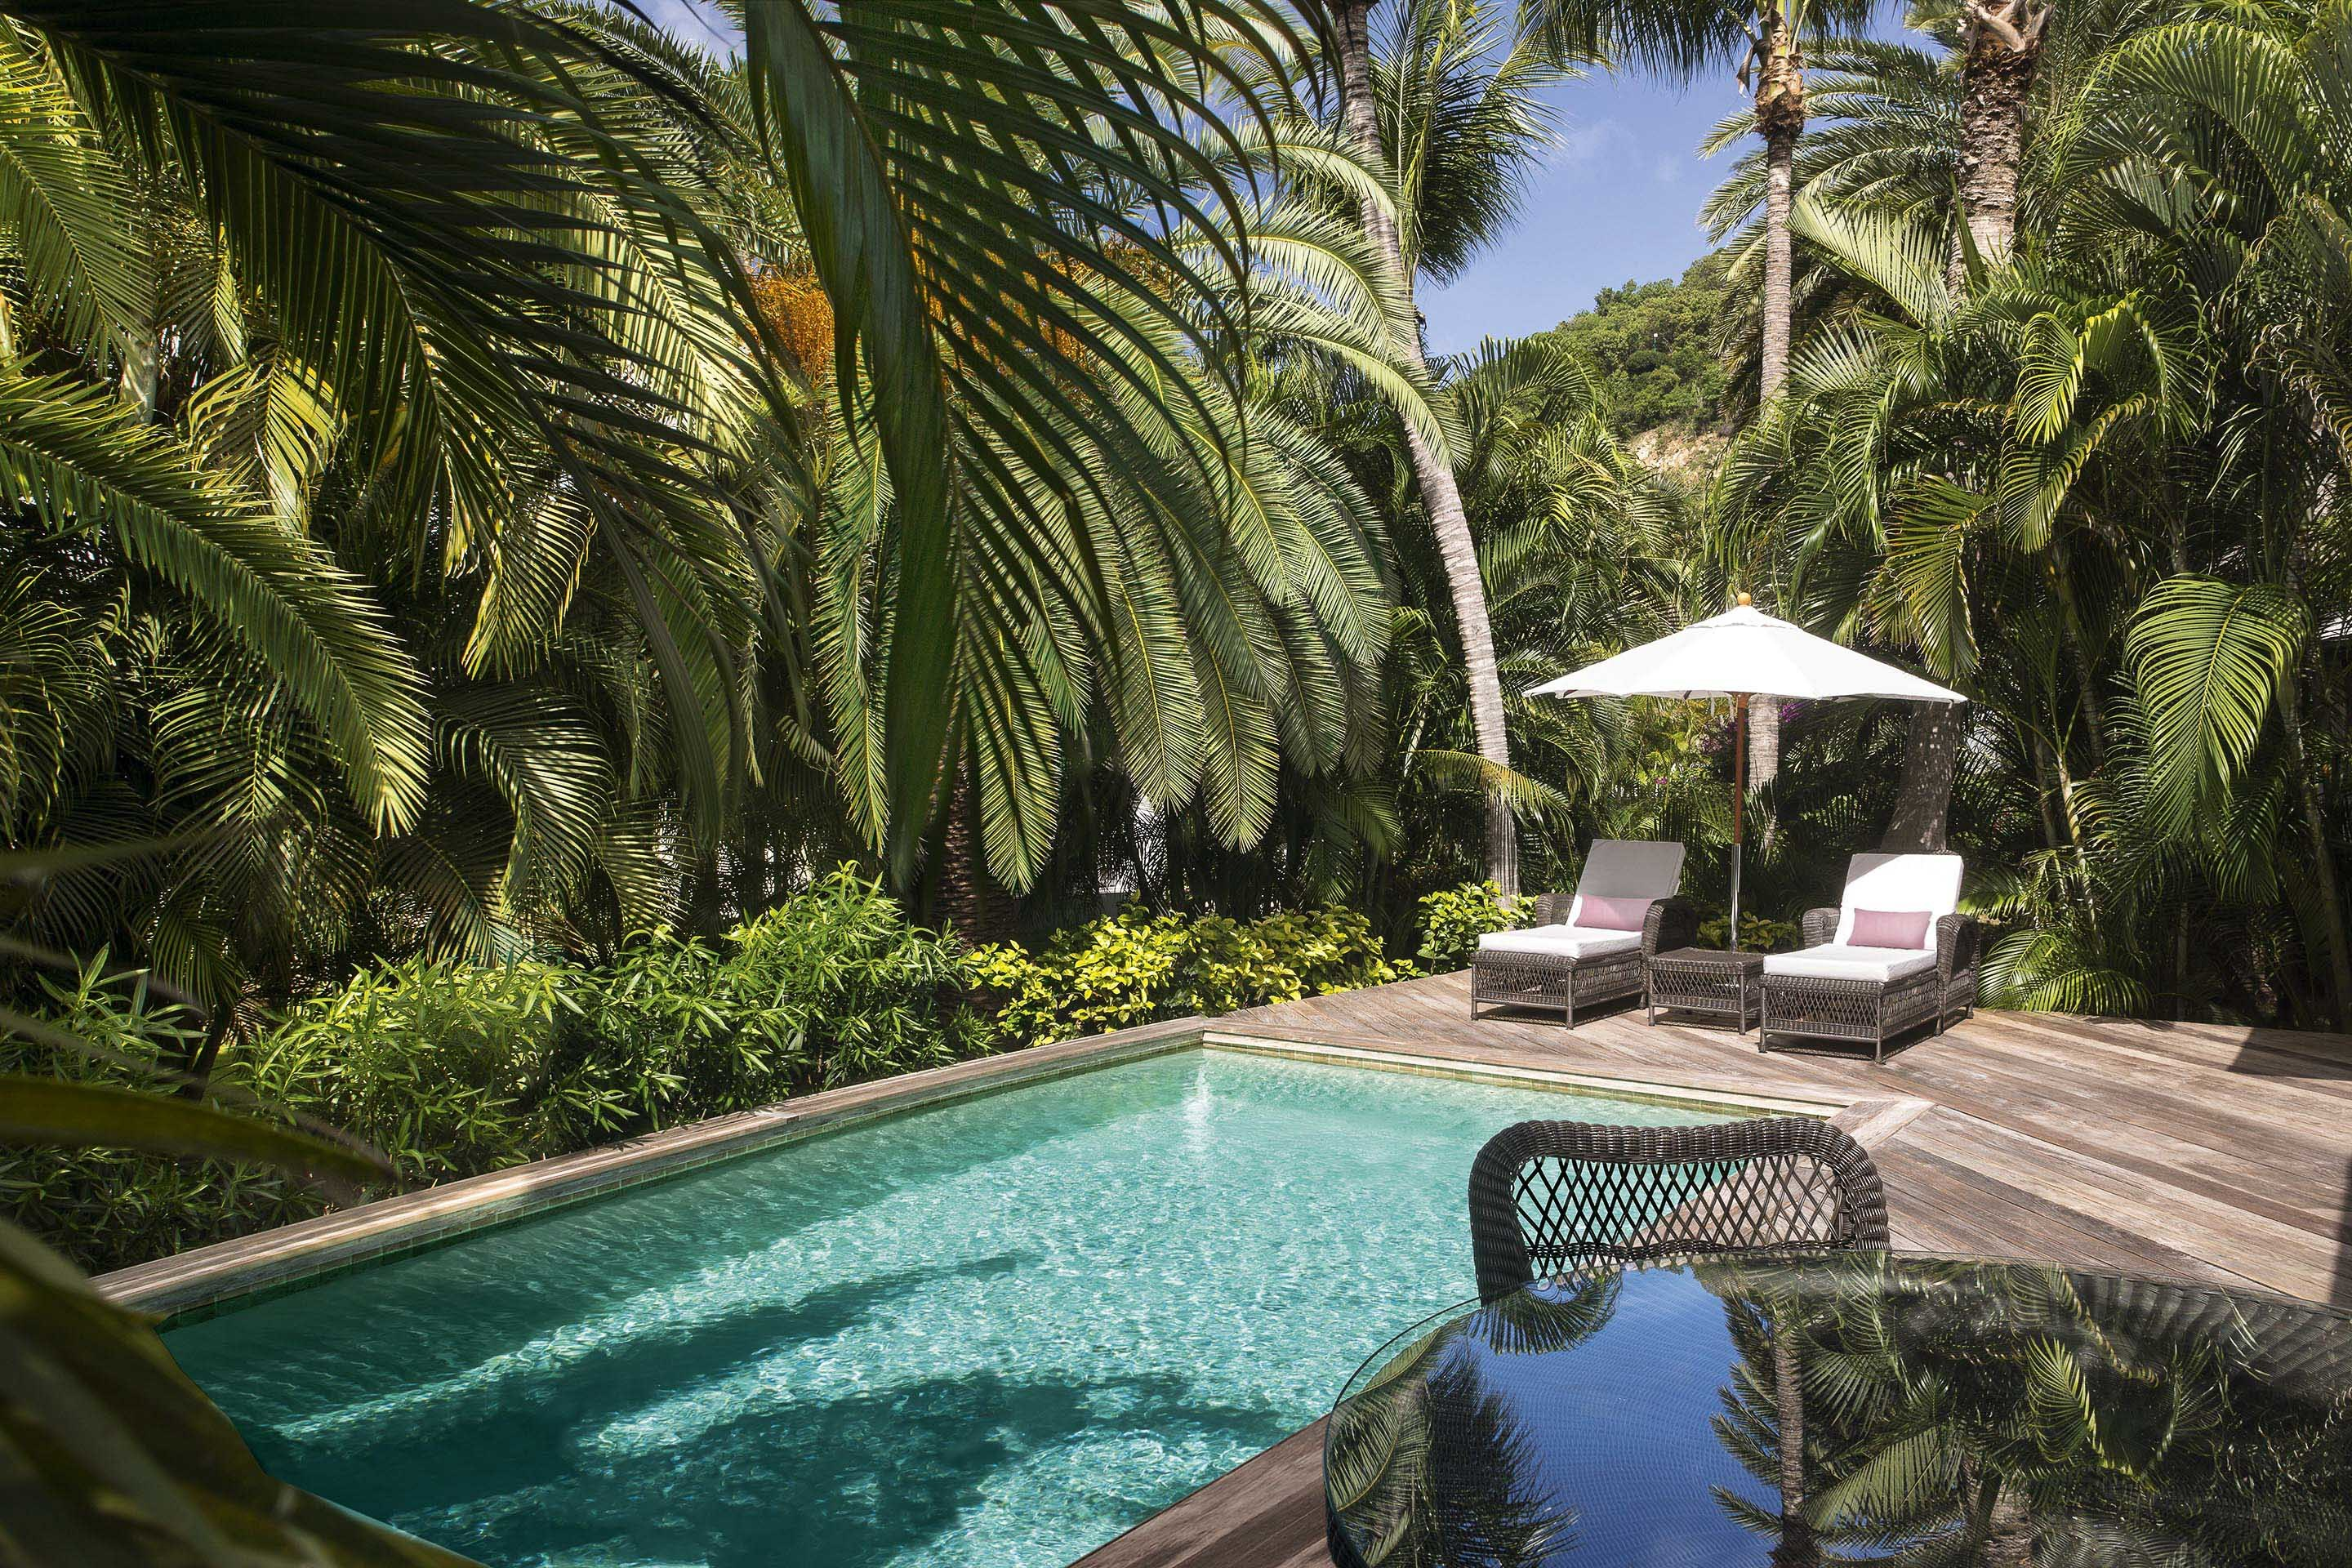 Luxury Posh Hotels A List For Discerning Travelers By Lv